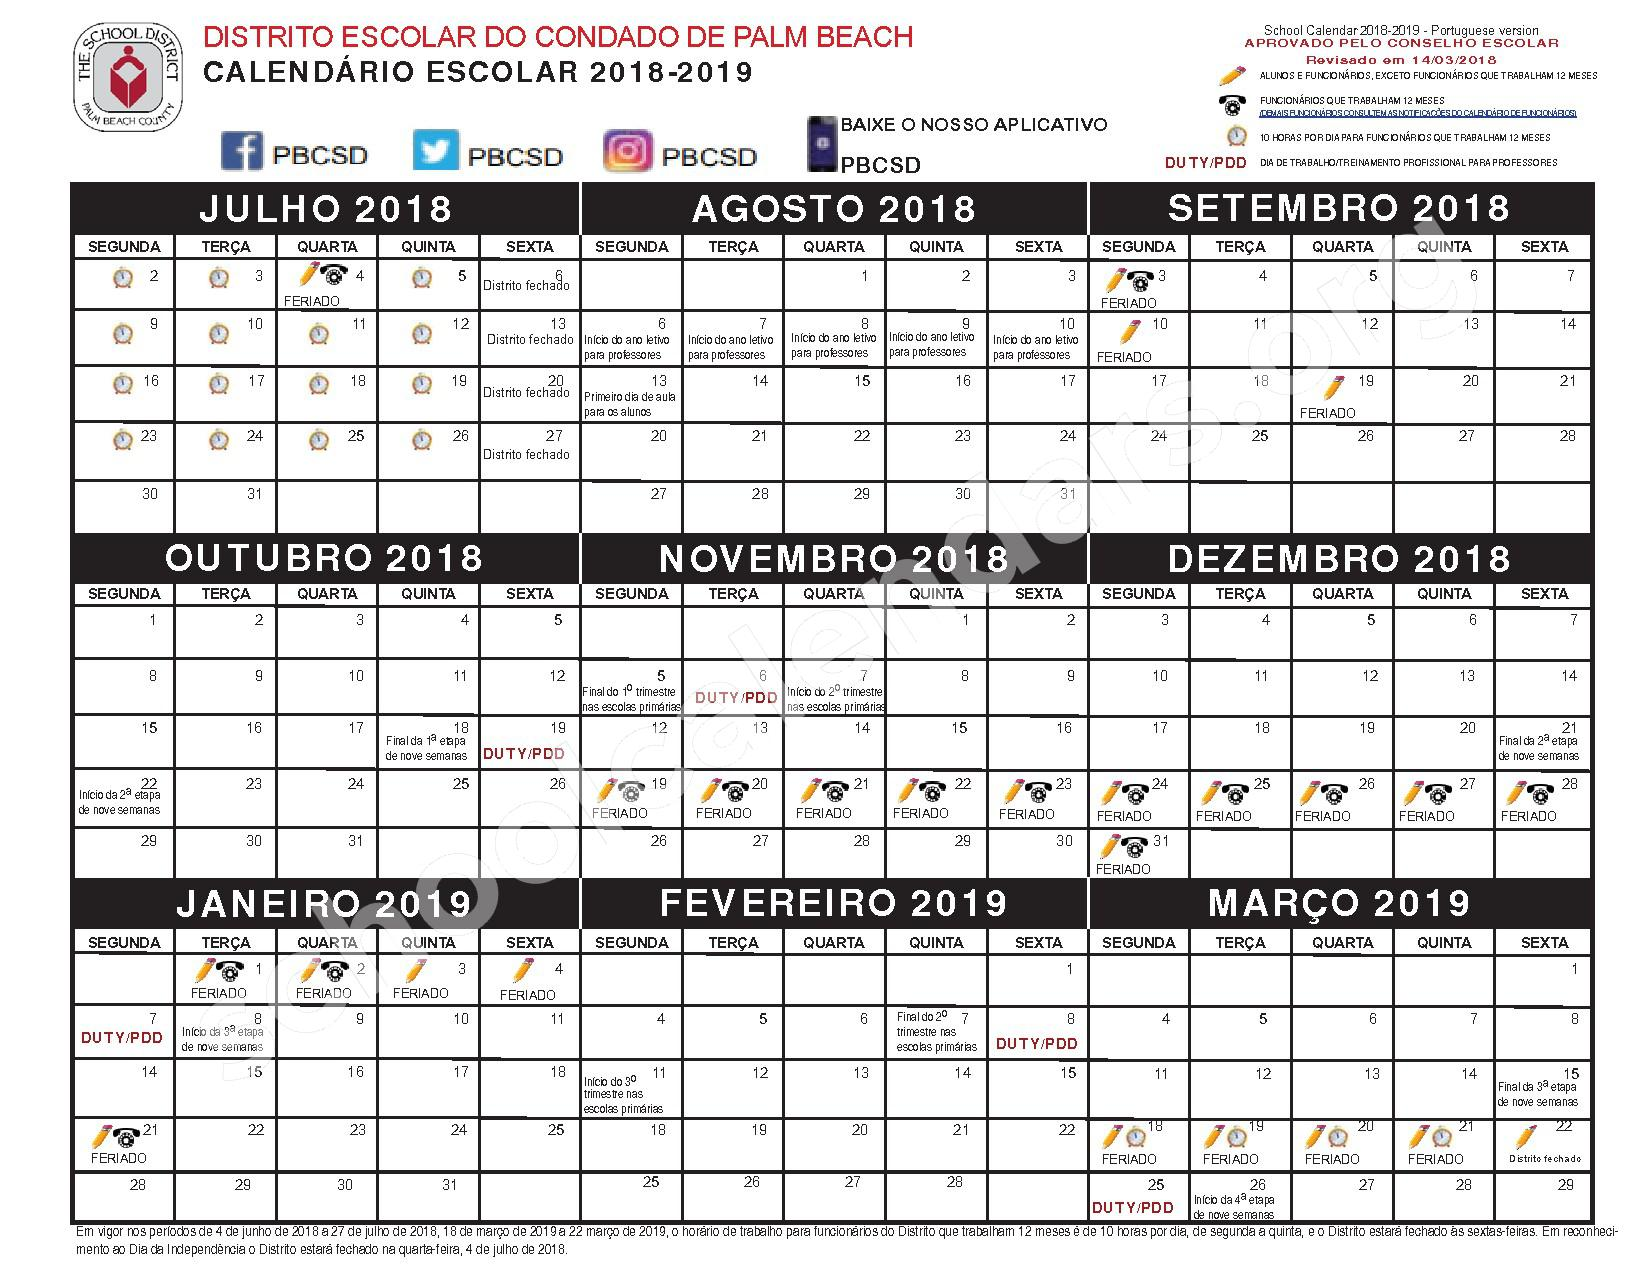 2018 - 2019 CALENDÁRIO ESCOLAR – Palm Beach County School District – page 1